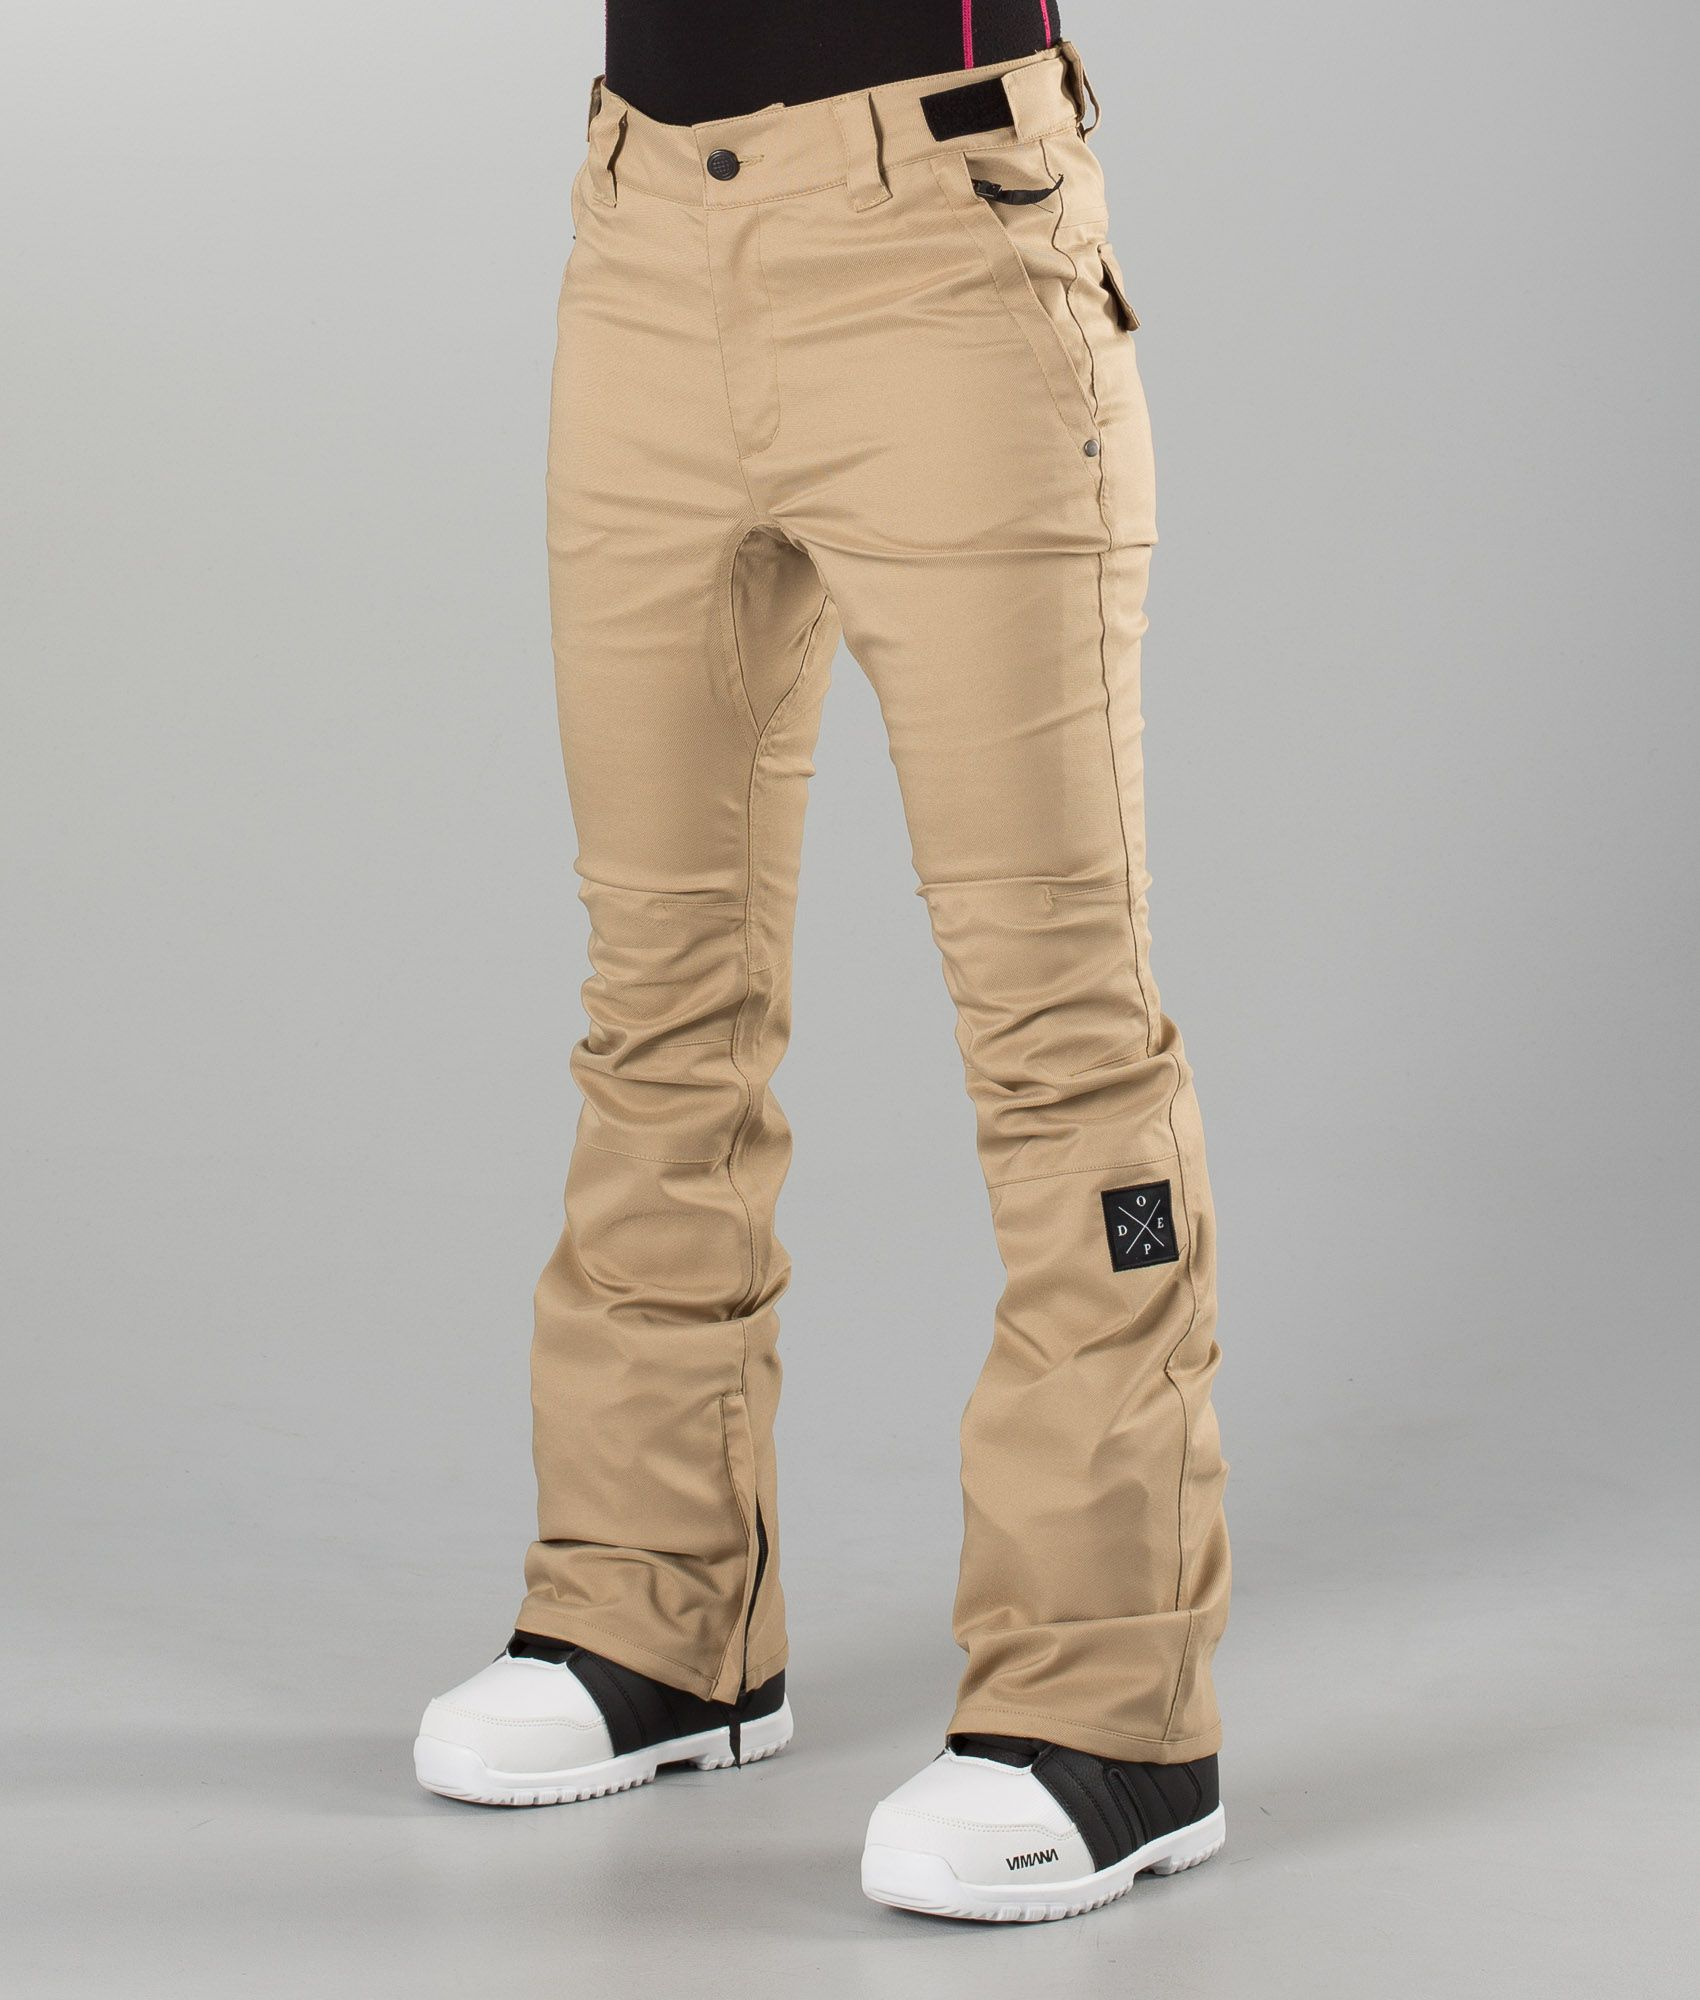 1c19c4756c Buy Tiger Unisex Snow Pants from Dope at Ridestore.com - Always free  shipping